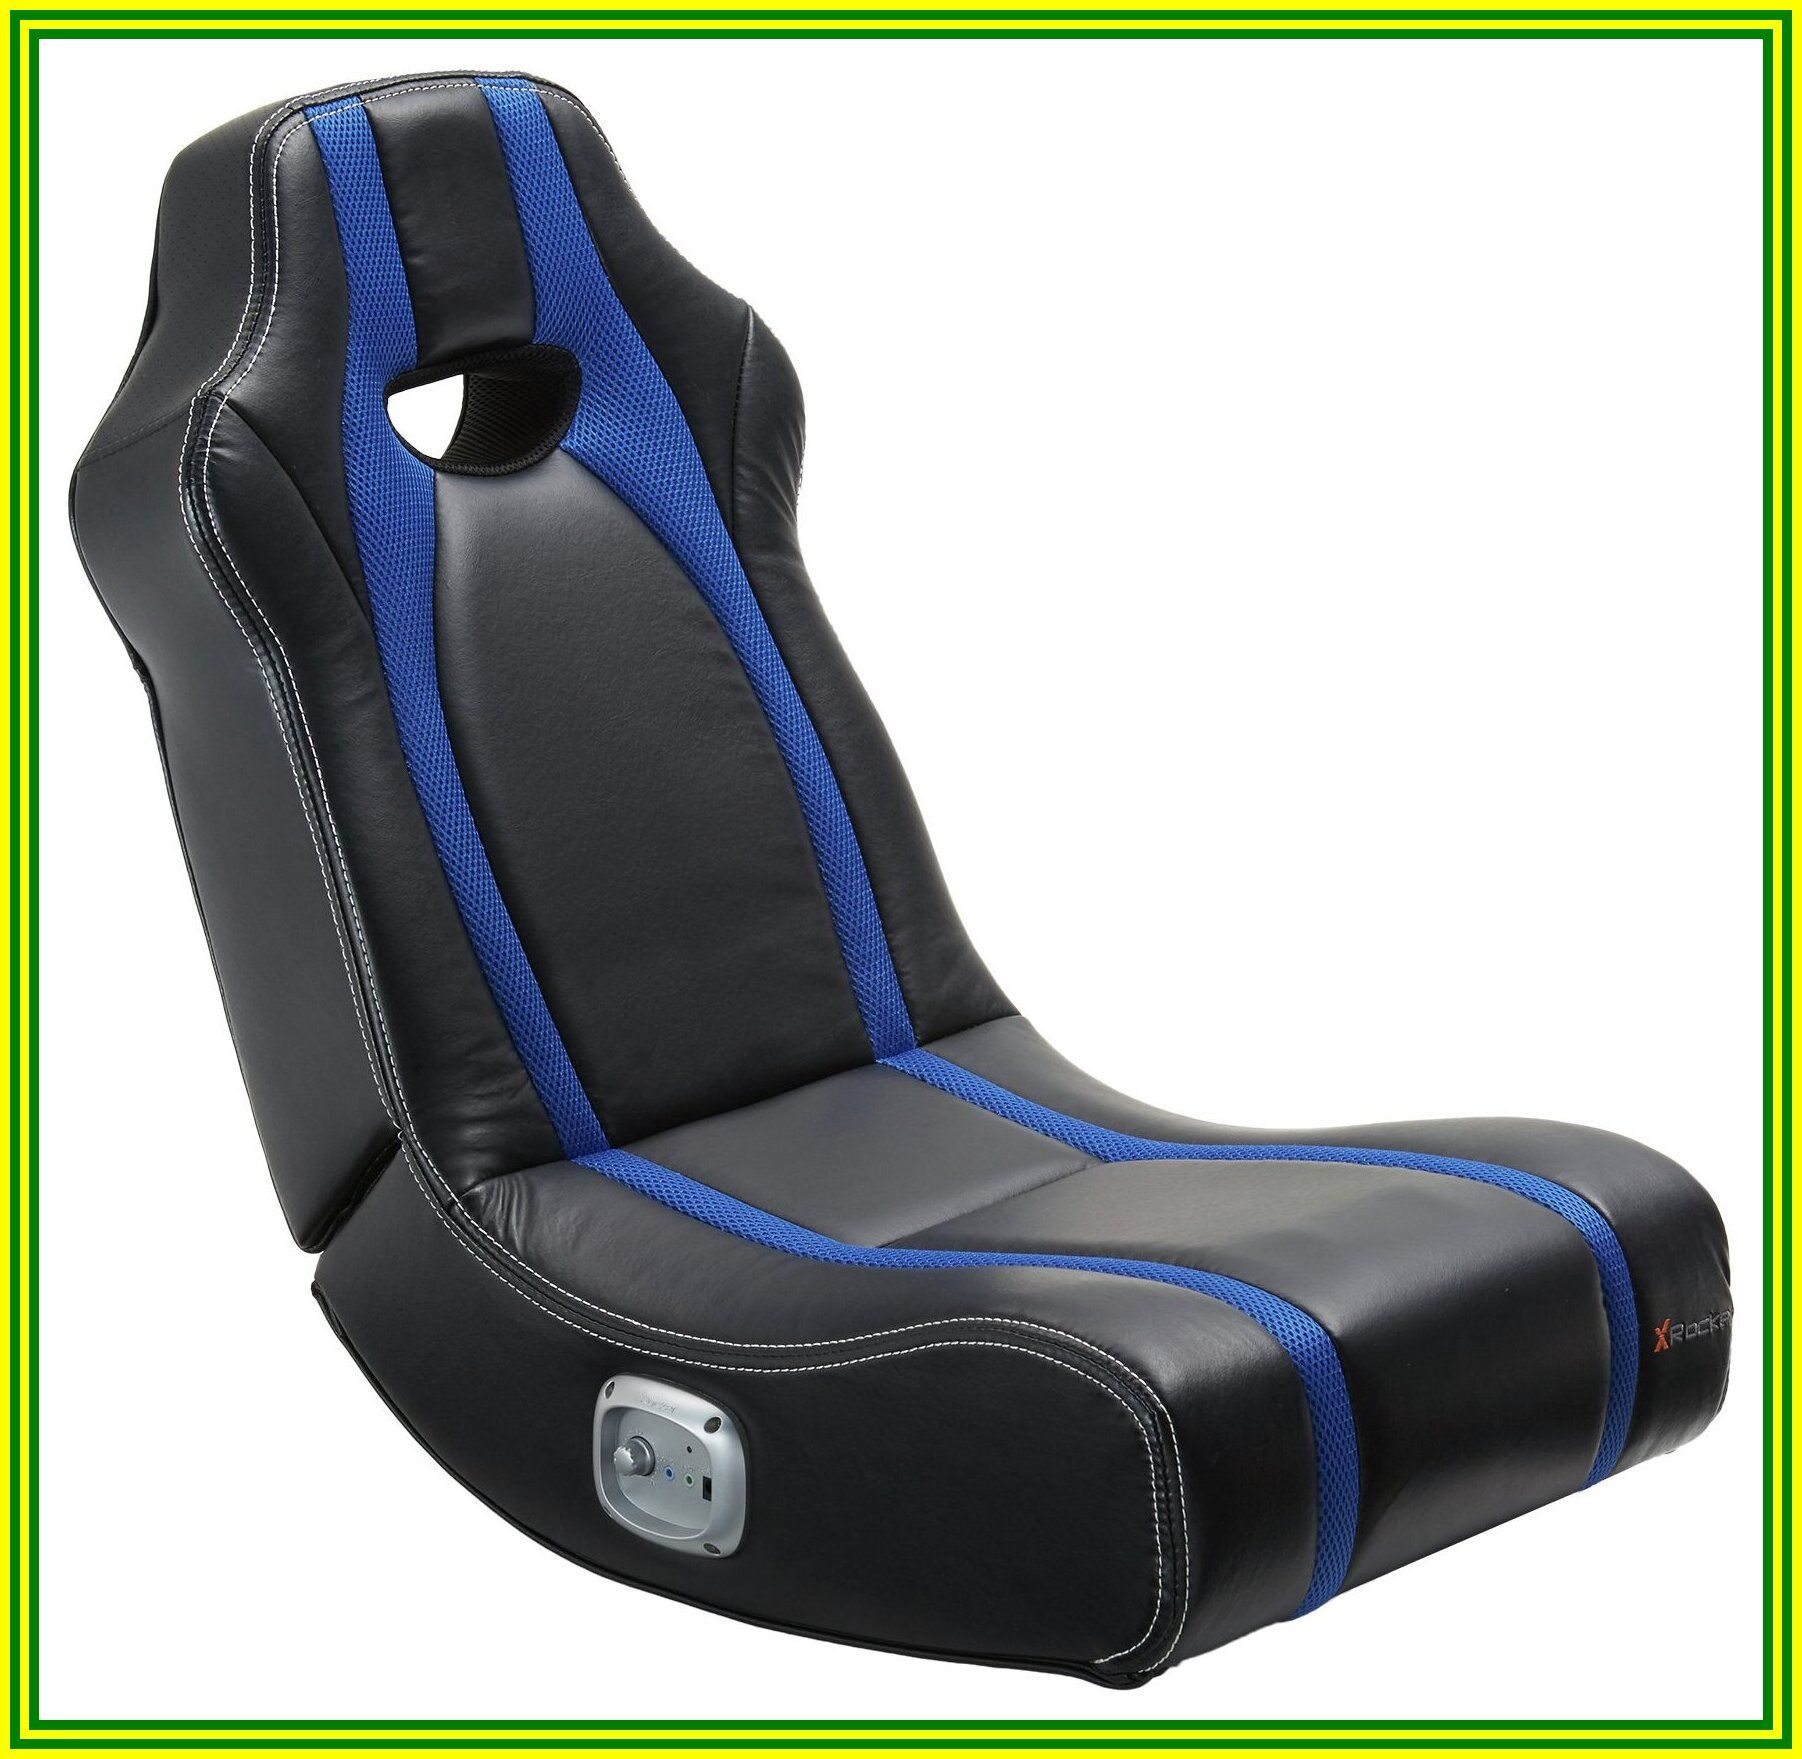 49 reference of gaming chair xbox one adults in 2020